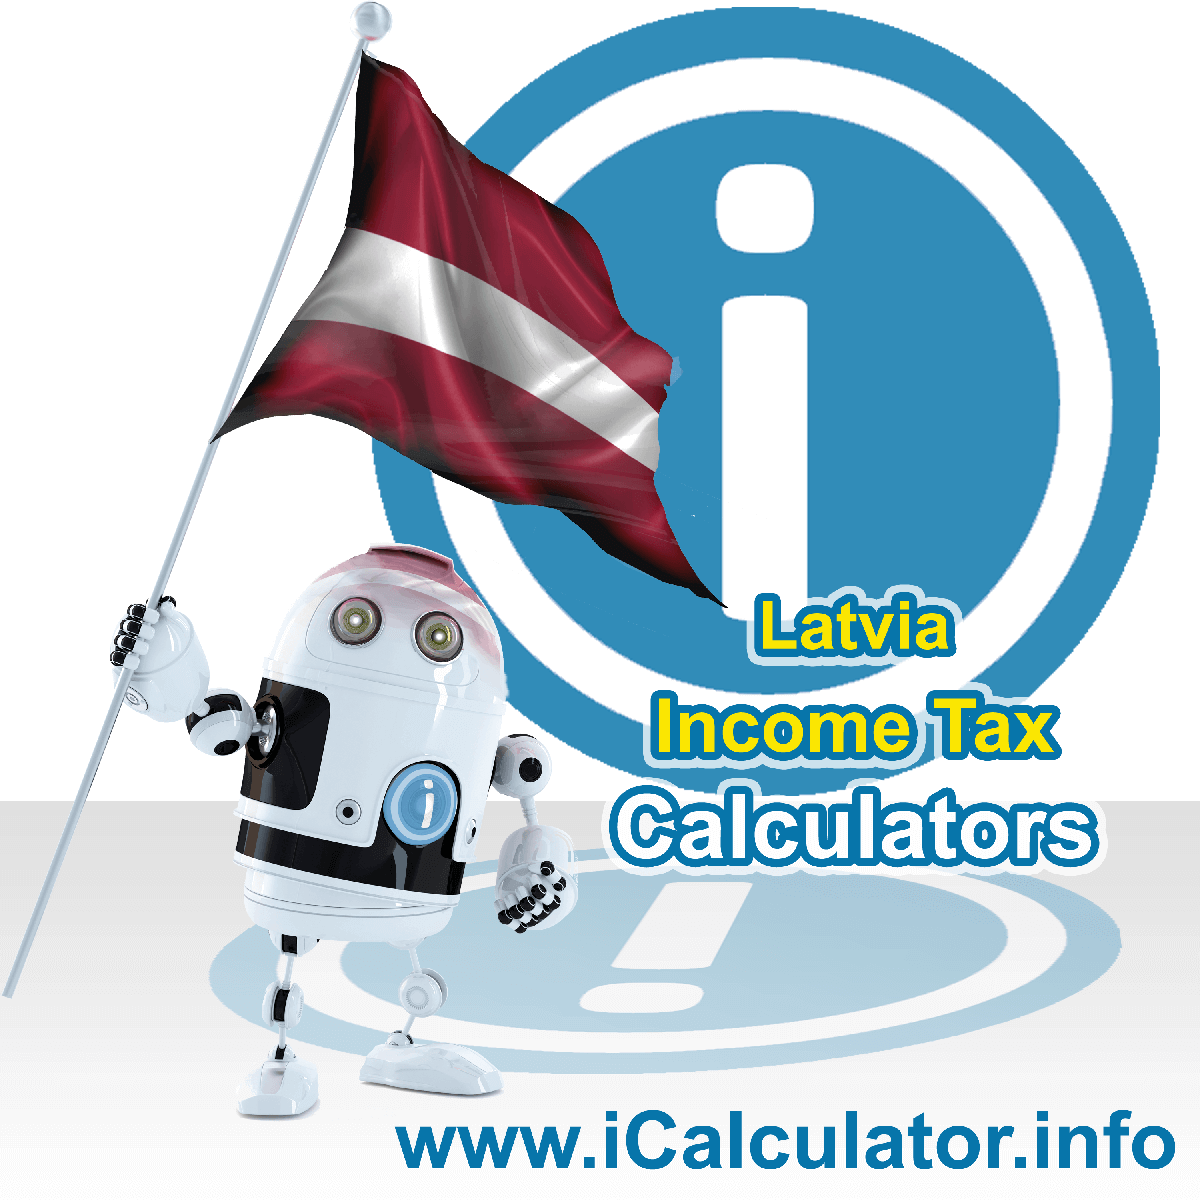 Latvia Income Tax Calculator. This image shows a new employer in Latvia calculating the annual payroll costs based on multiple payroll payments in one year in Latvia using the Latvia income tax calculator to understand their payroll costs in Latvia in 2021